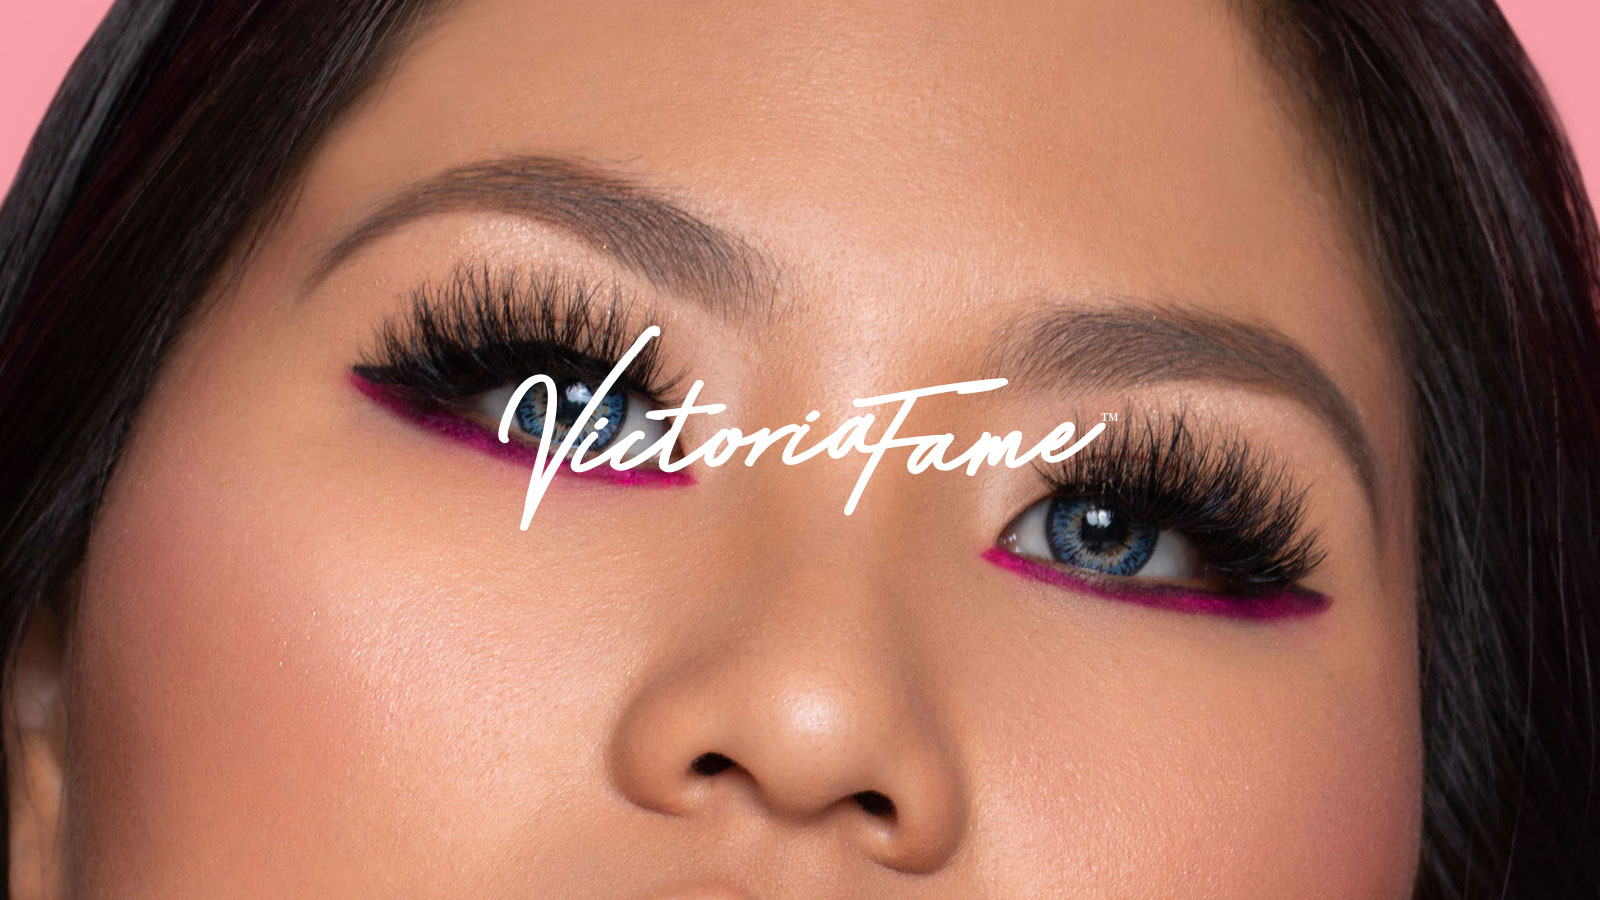 Victoria Fame Beauty